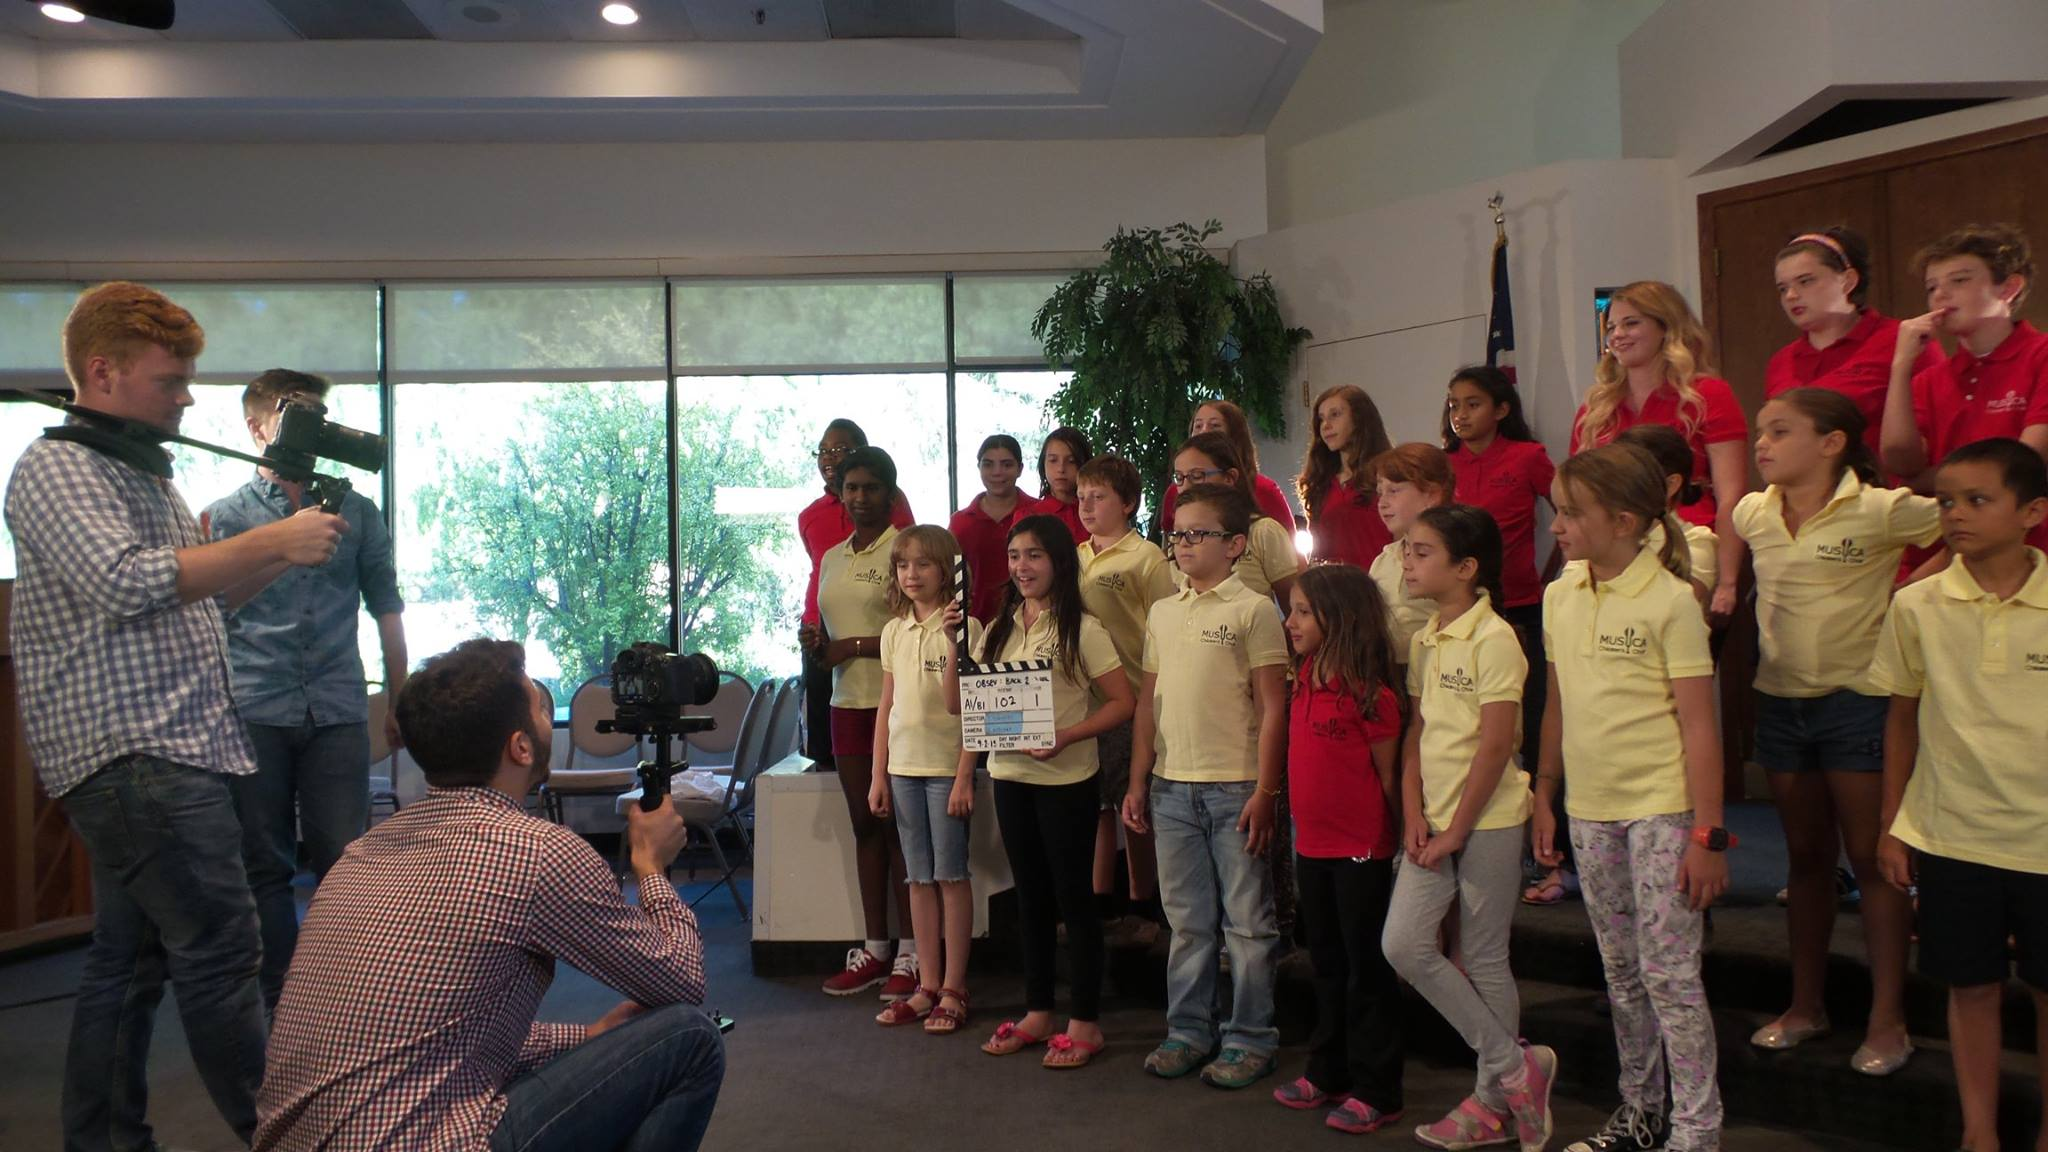 The Childrens Choir filming a video